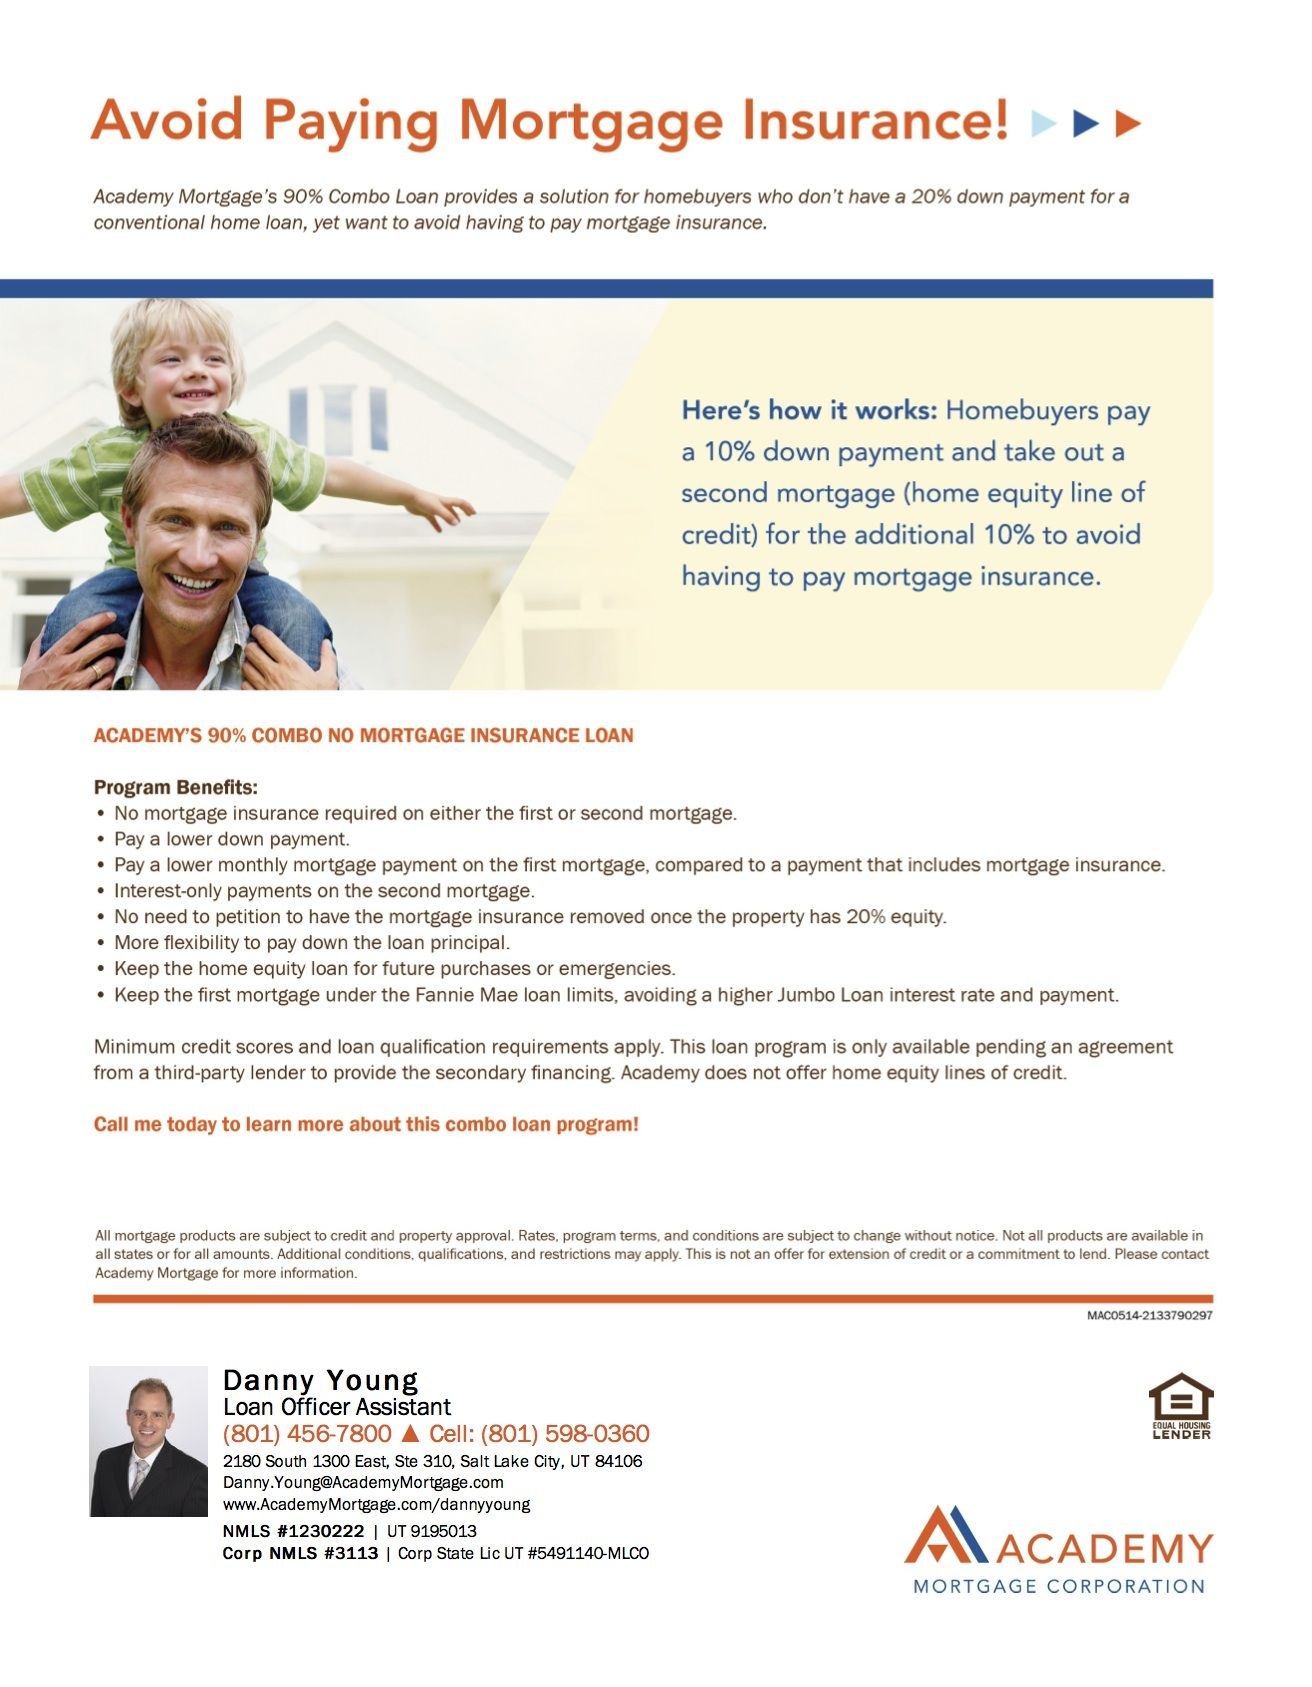 Avoid Paying Mortgage Insurance 90 Combo Loan Can Help Make This Happen Its Smart To Think Outside The Home Equity Line Mortgage Loan Officer Home Equity